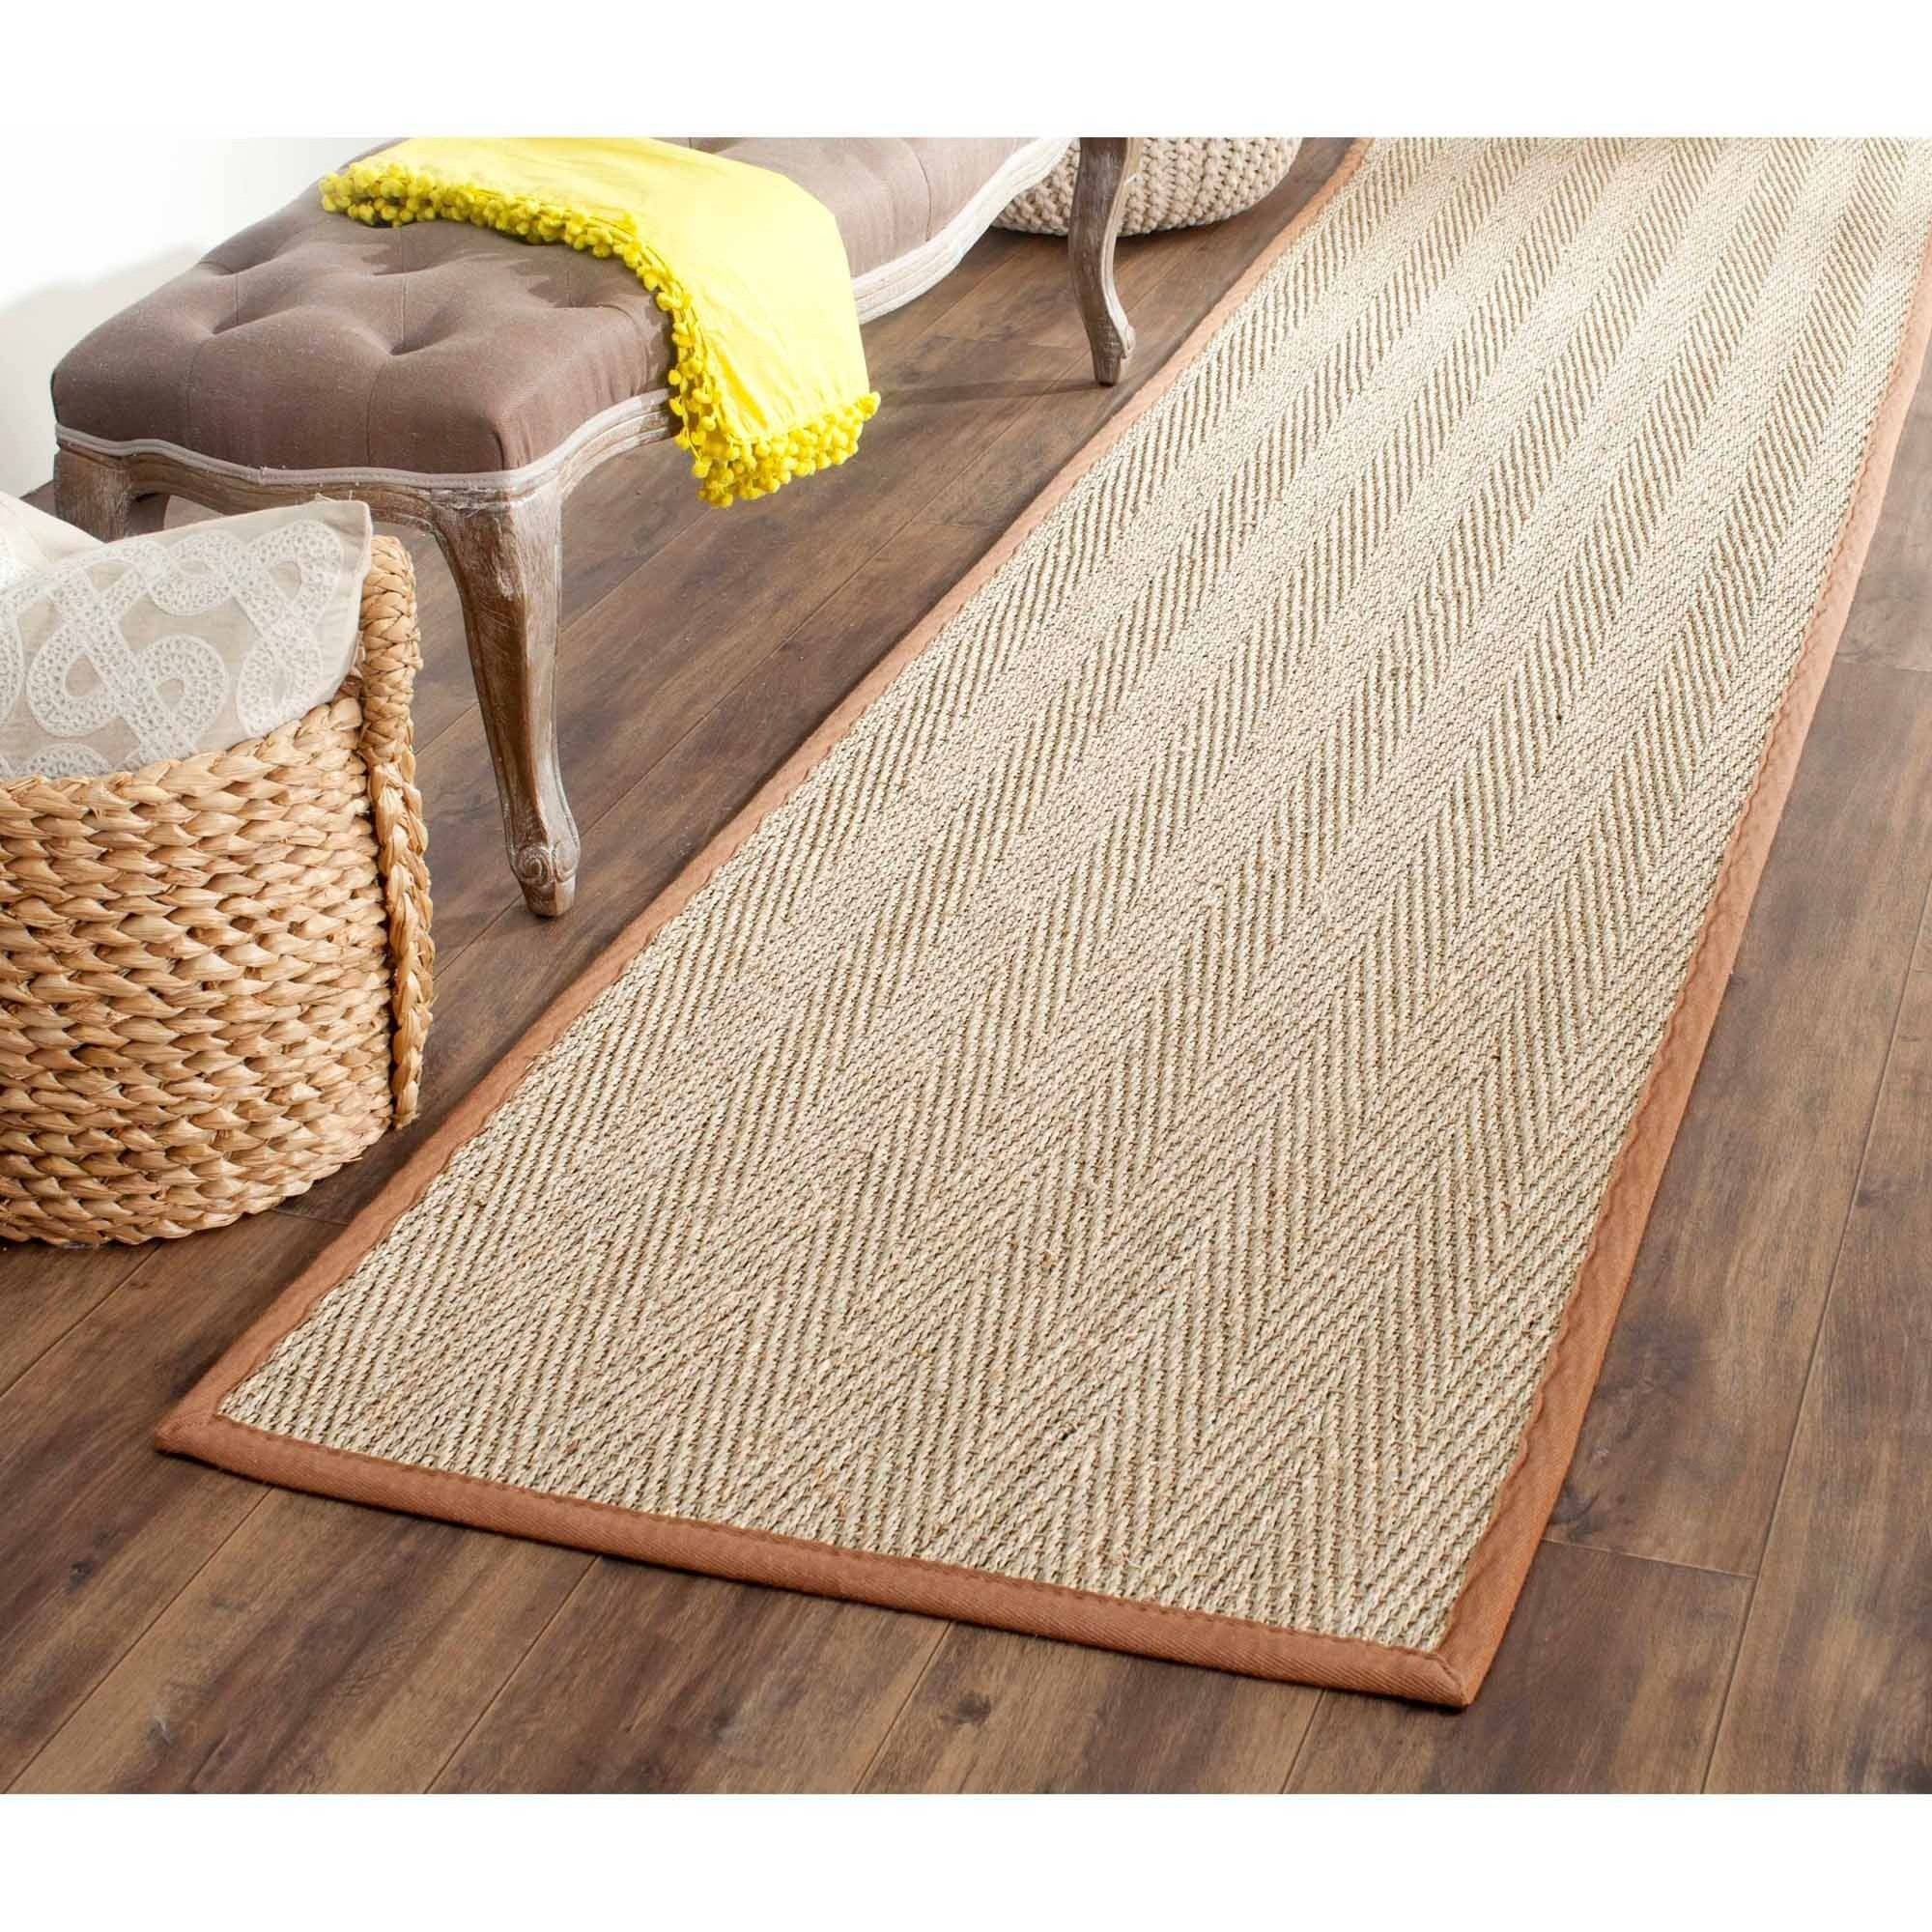 Safavieh Maisy Natural Fiber Runner Rug